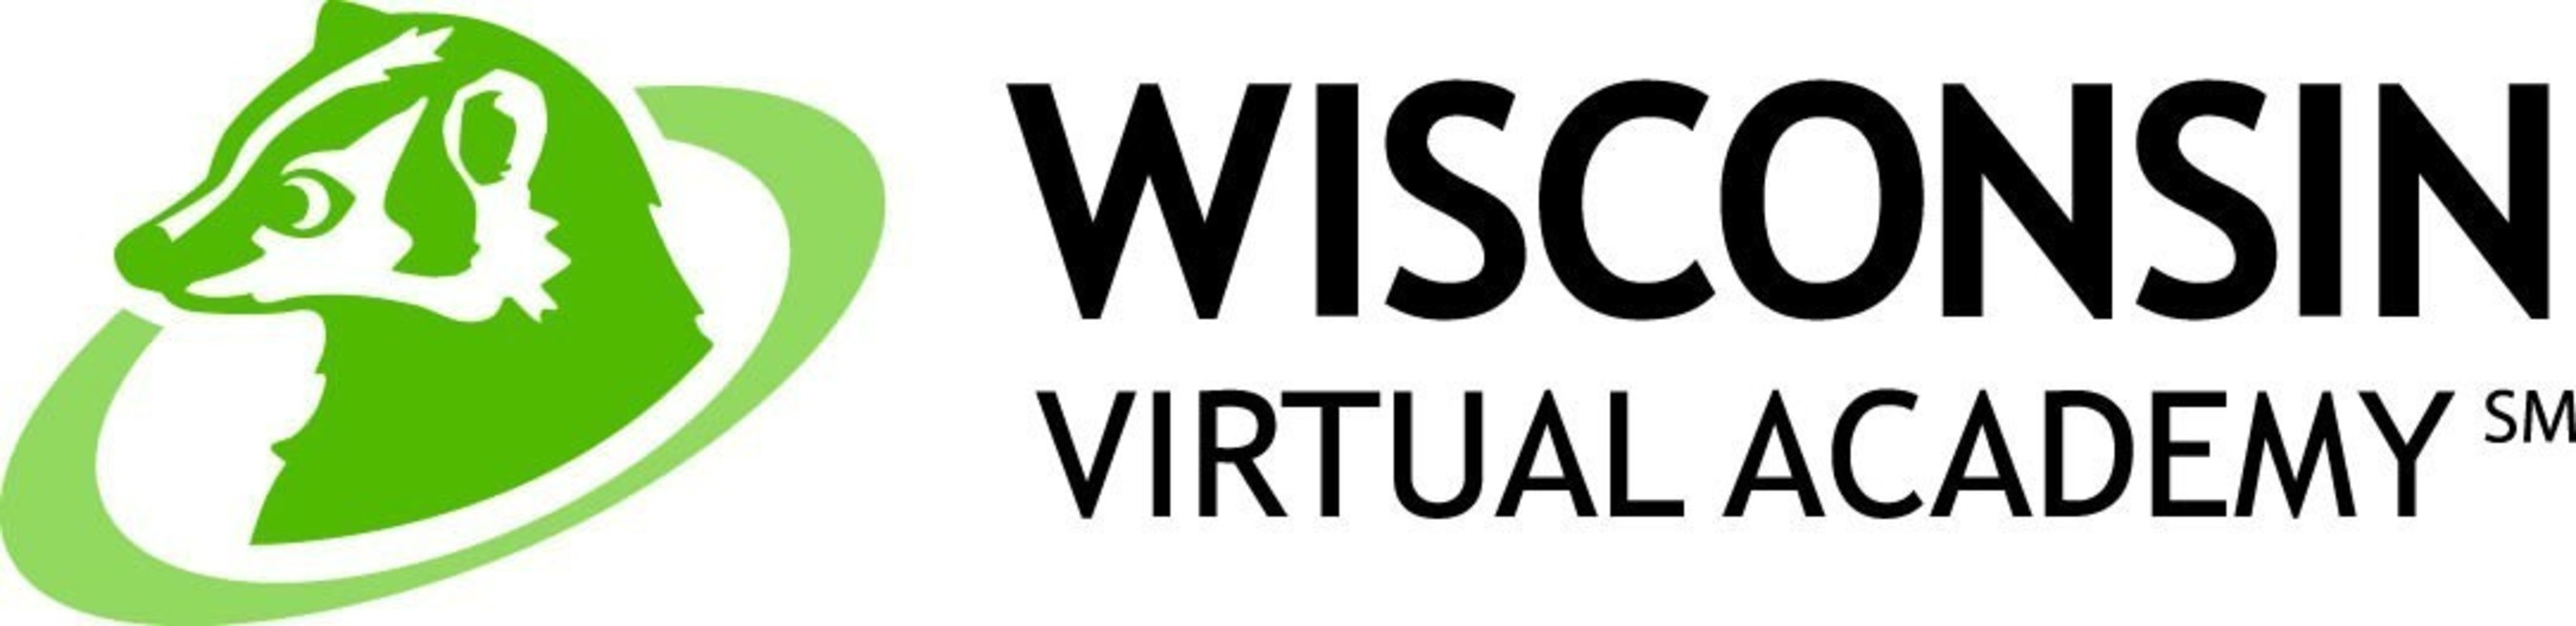 Wisconsin Virtual Academy